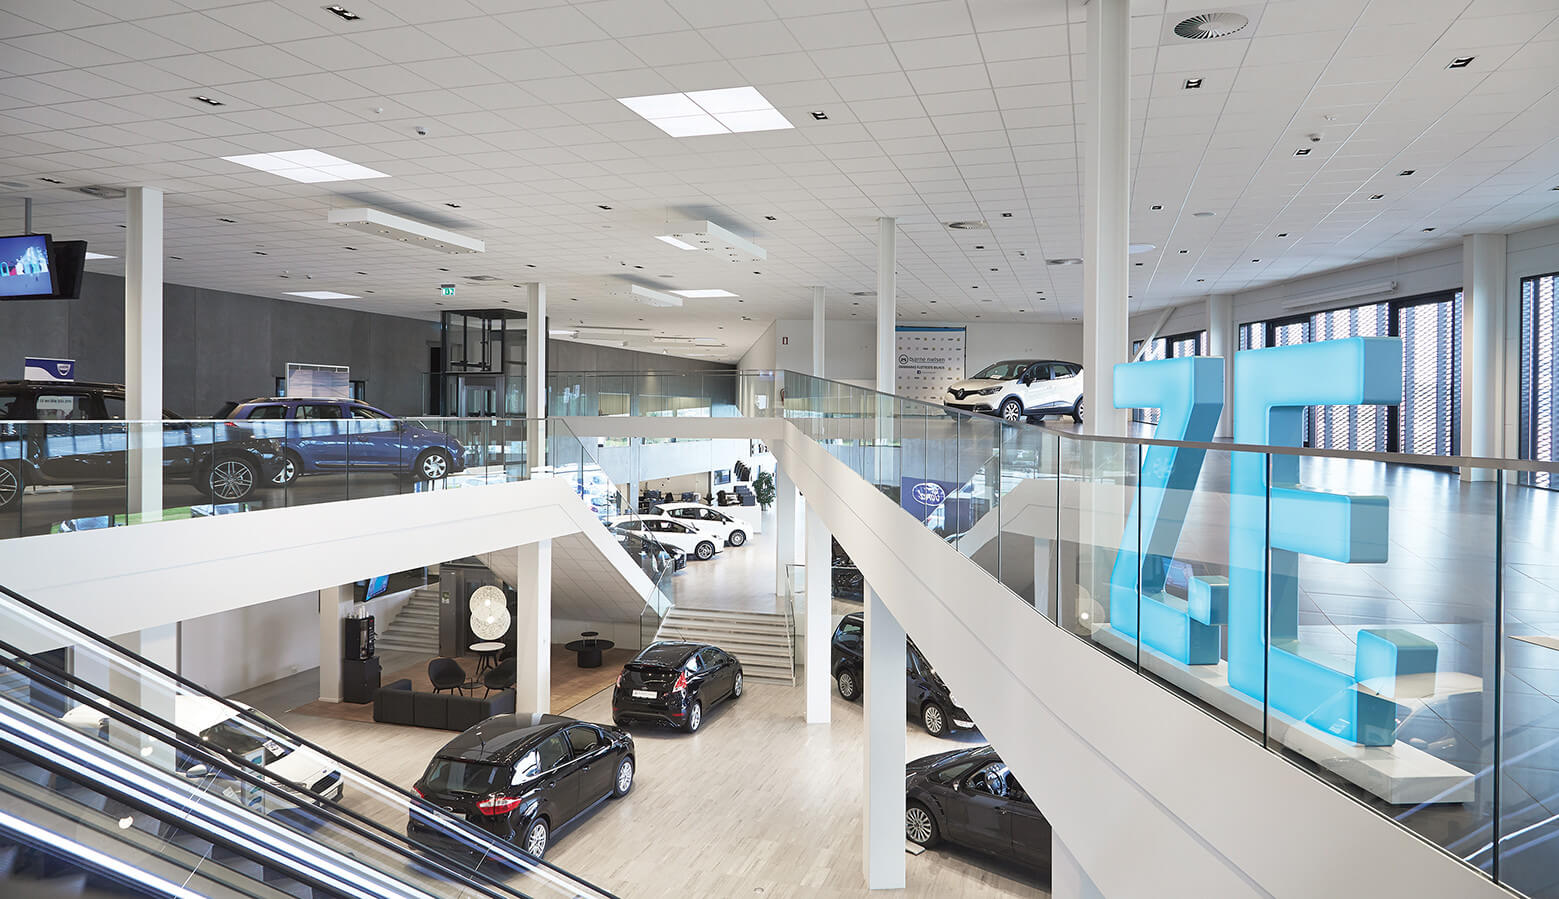 showroom, cars and stairs